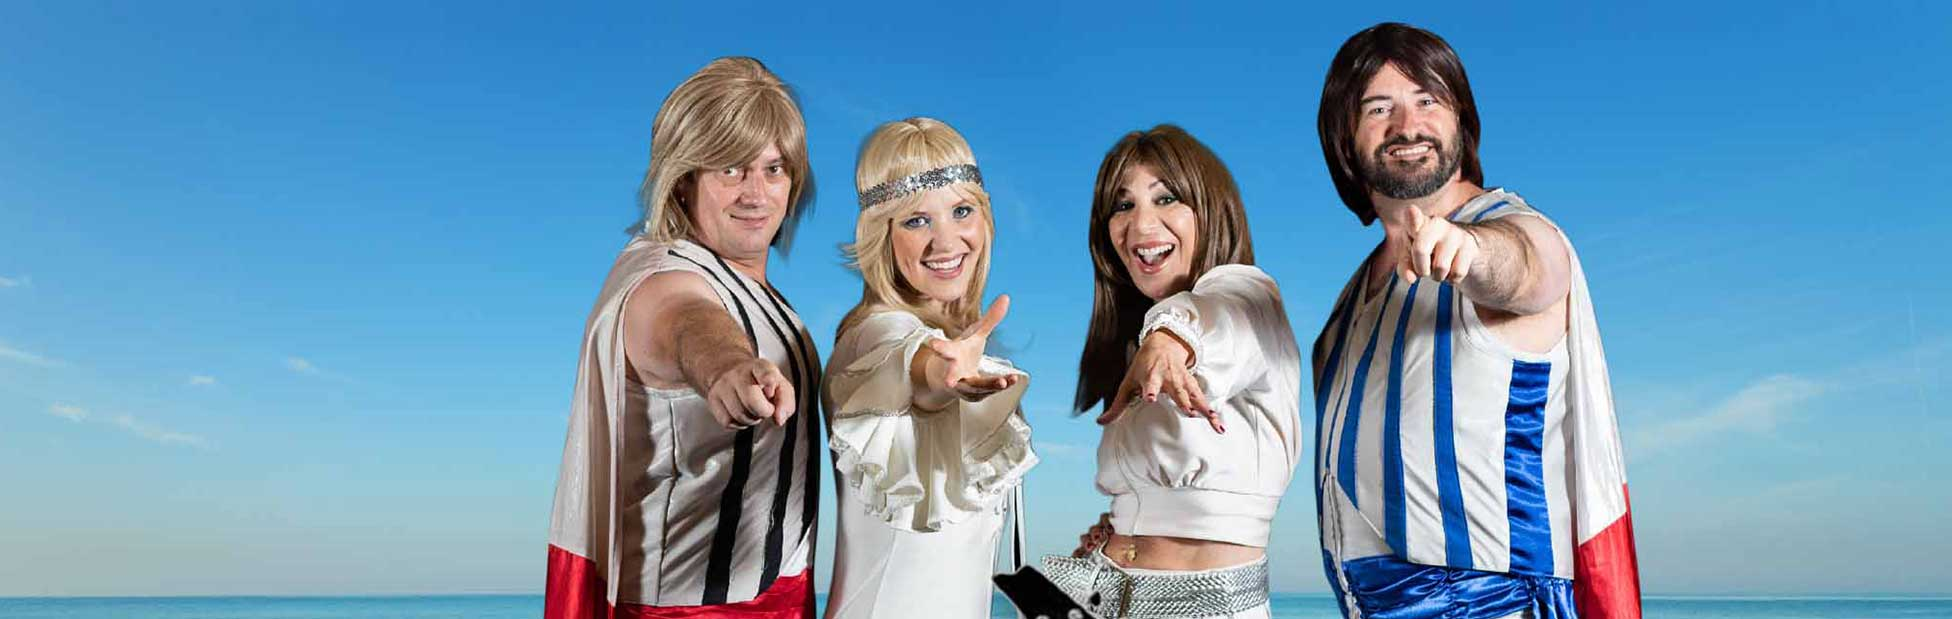 ABBA tribute performers